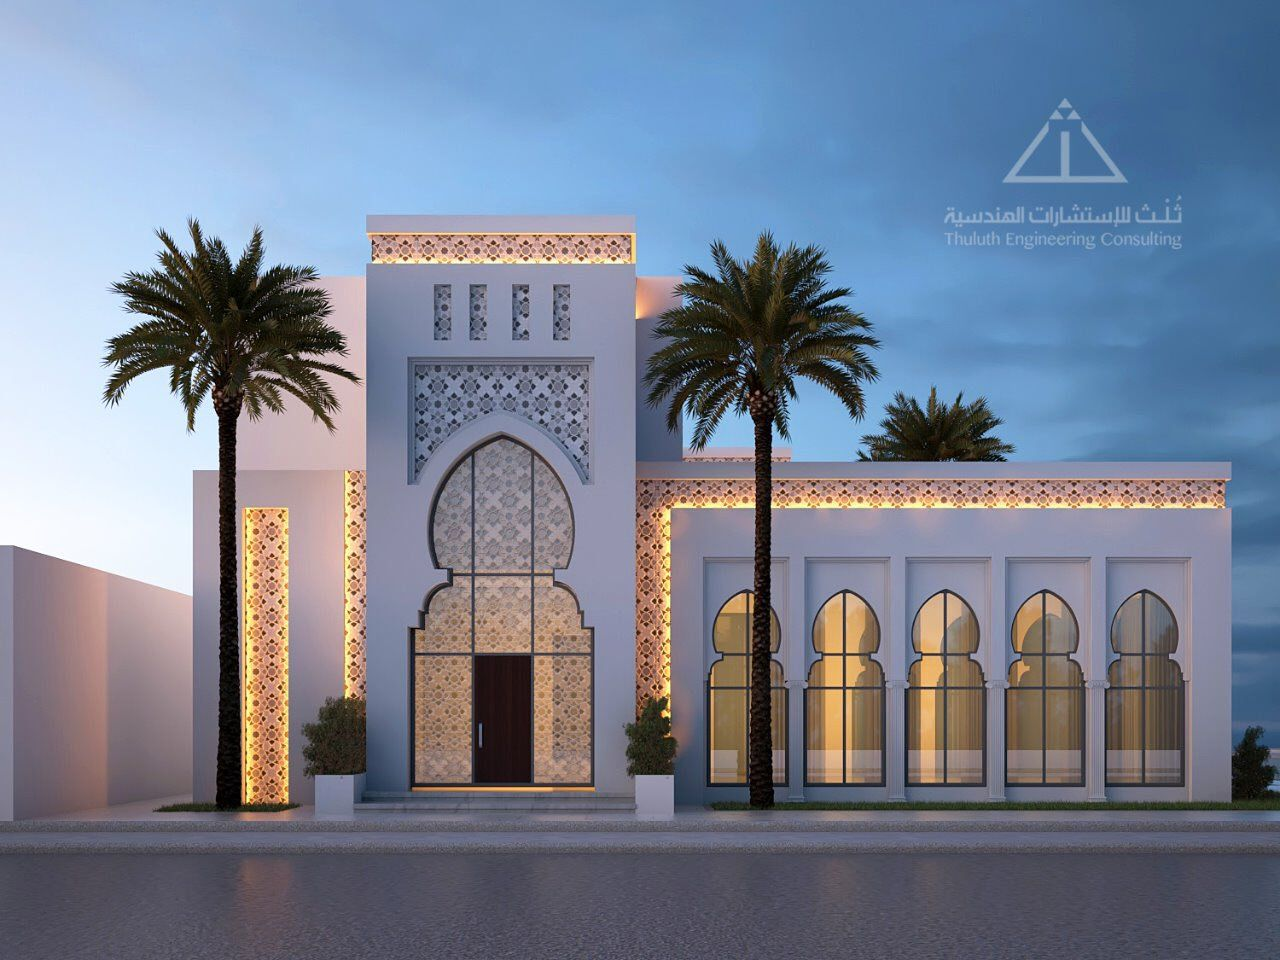 Pin By Ahmed Alghunim On واجهات مباني Architecture Building House Styles Architecture